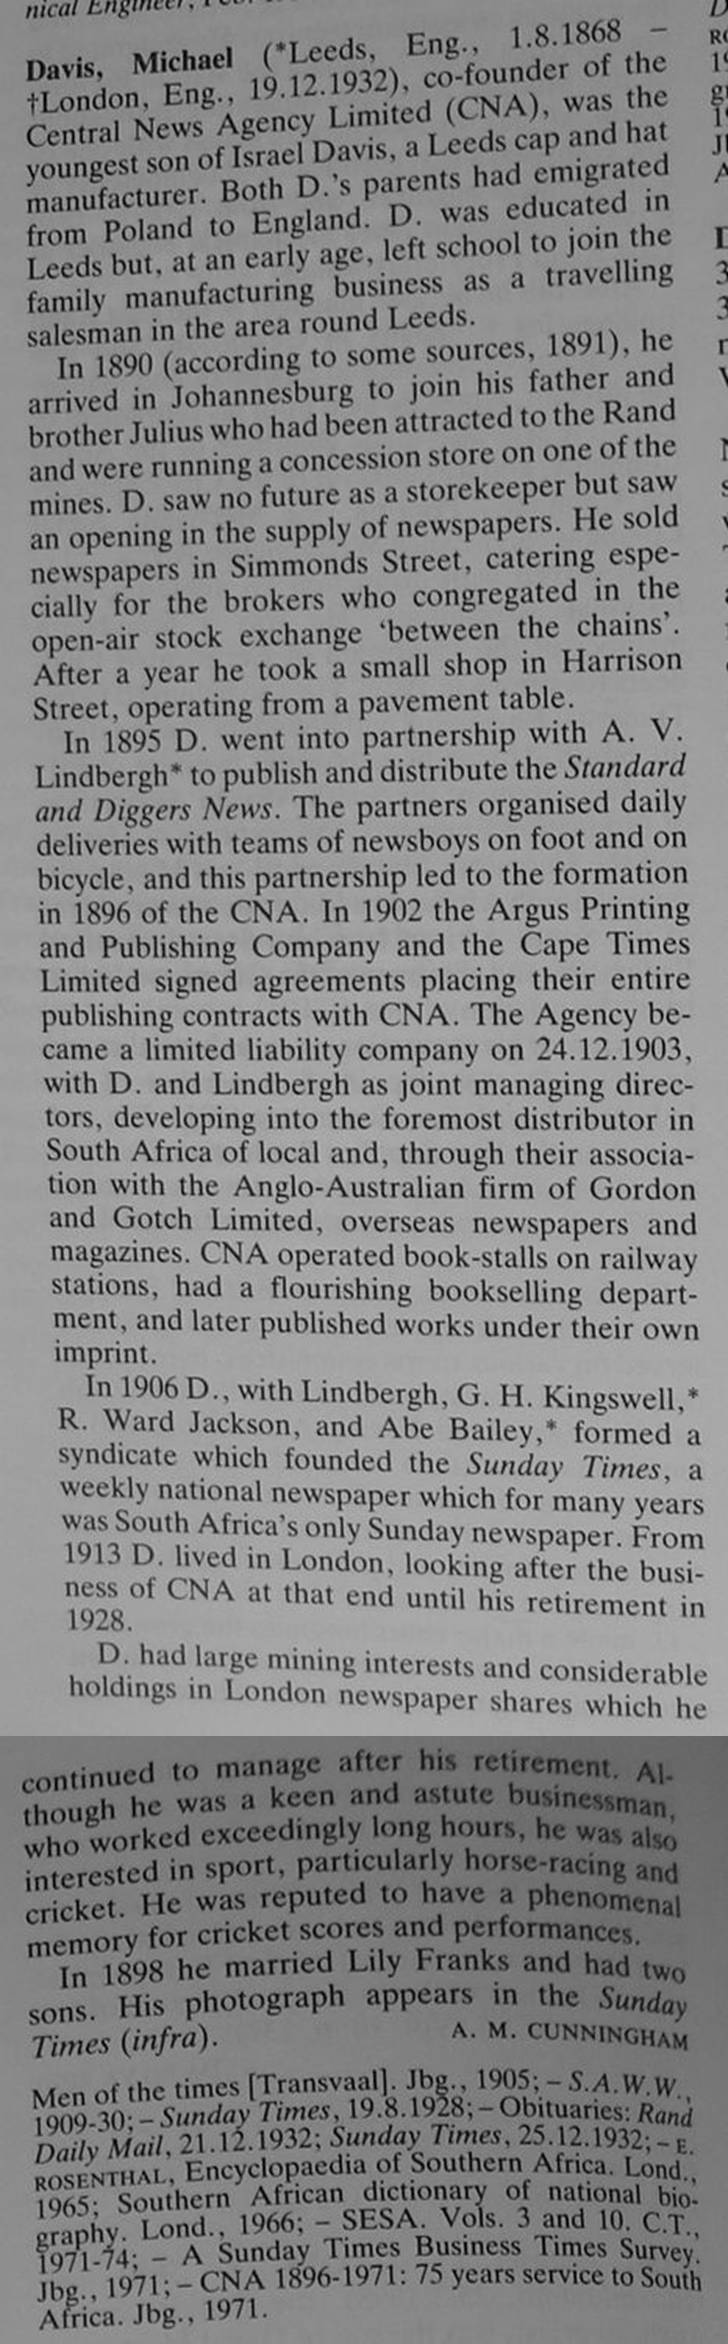 Biography from Standard Encyclopaedia of Southern Africa